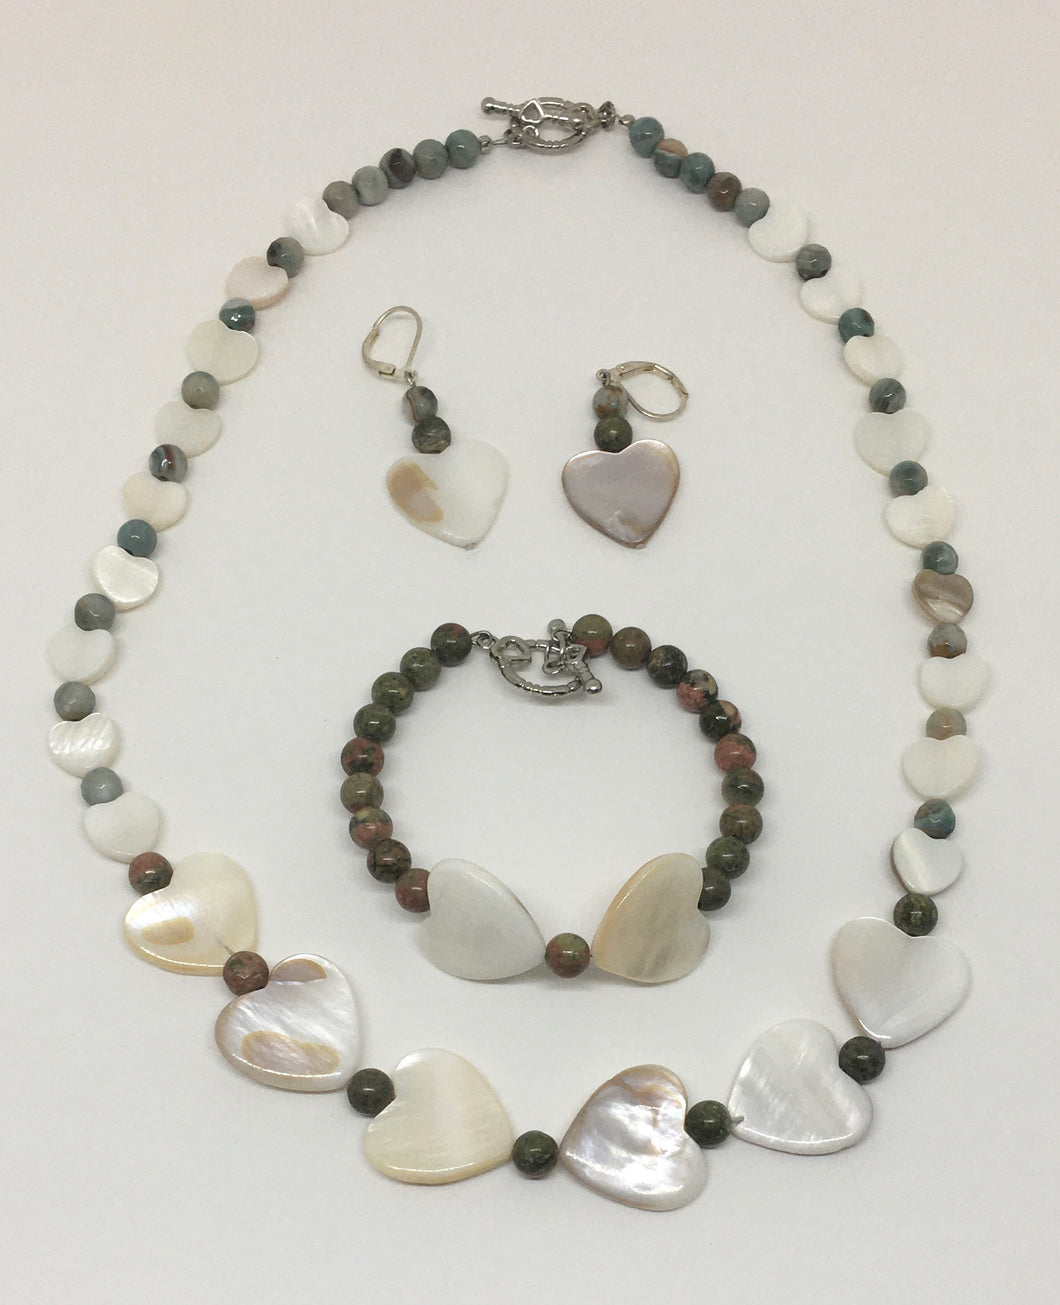 Heart Gemstone Necklace